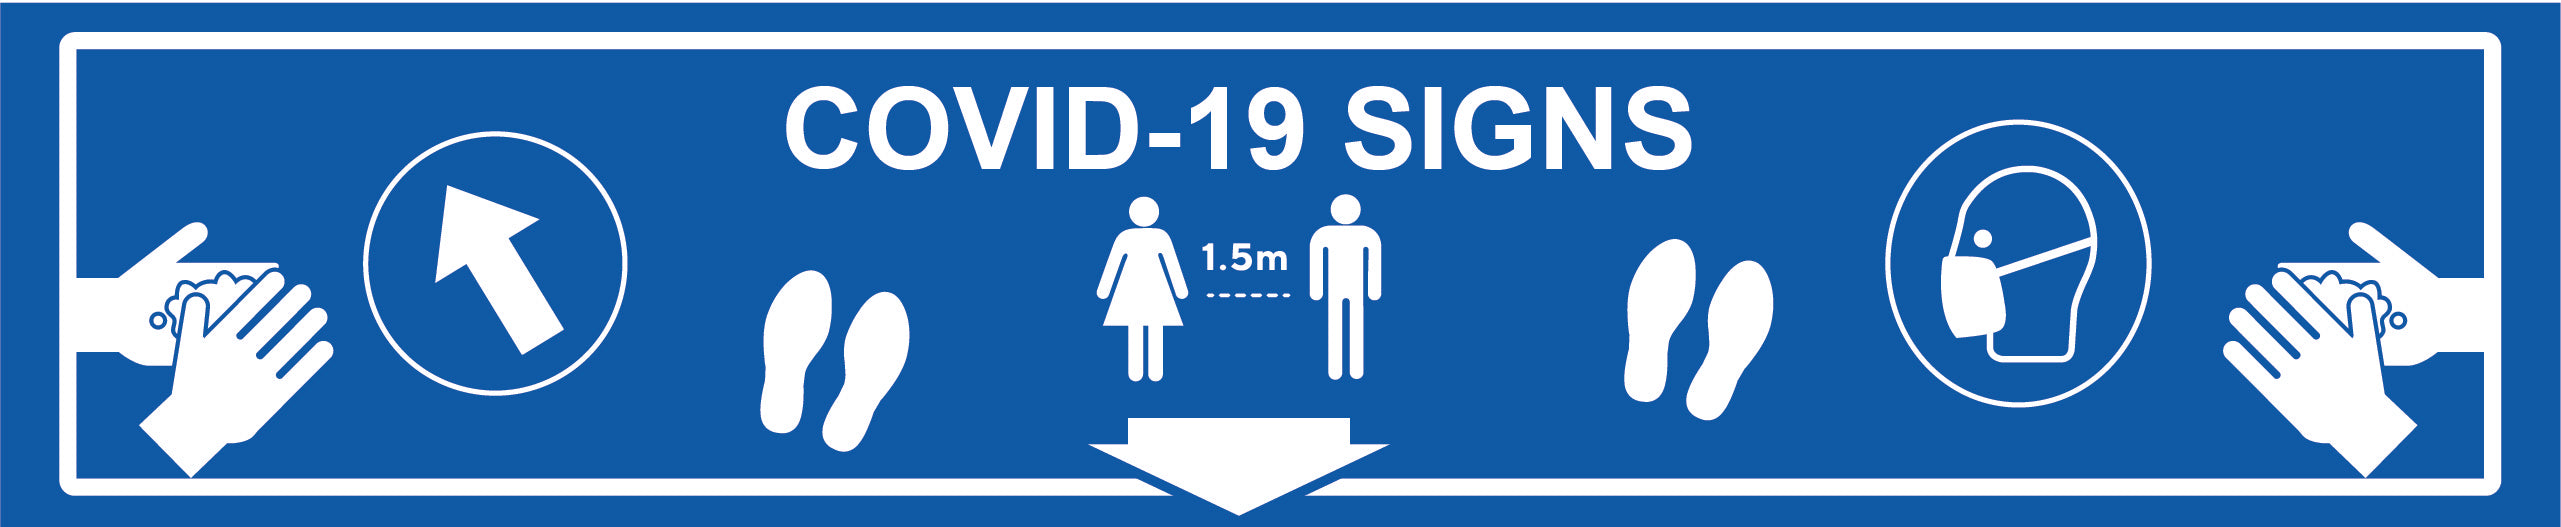 Covid-19 Face Mask signs